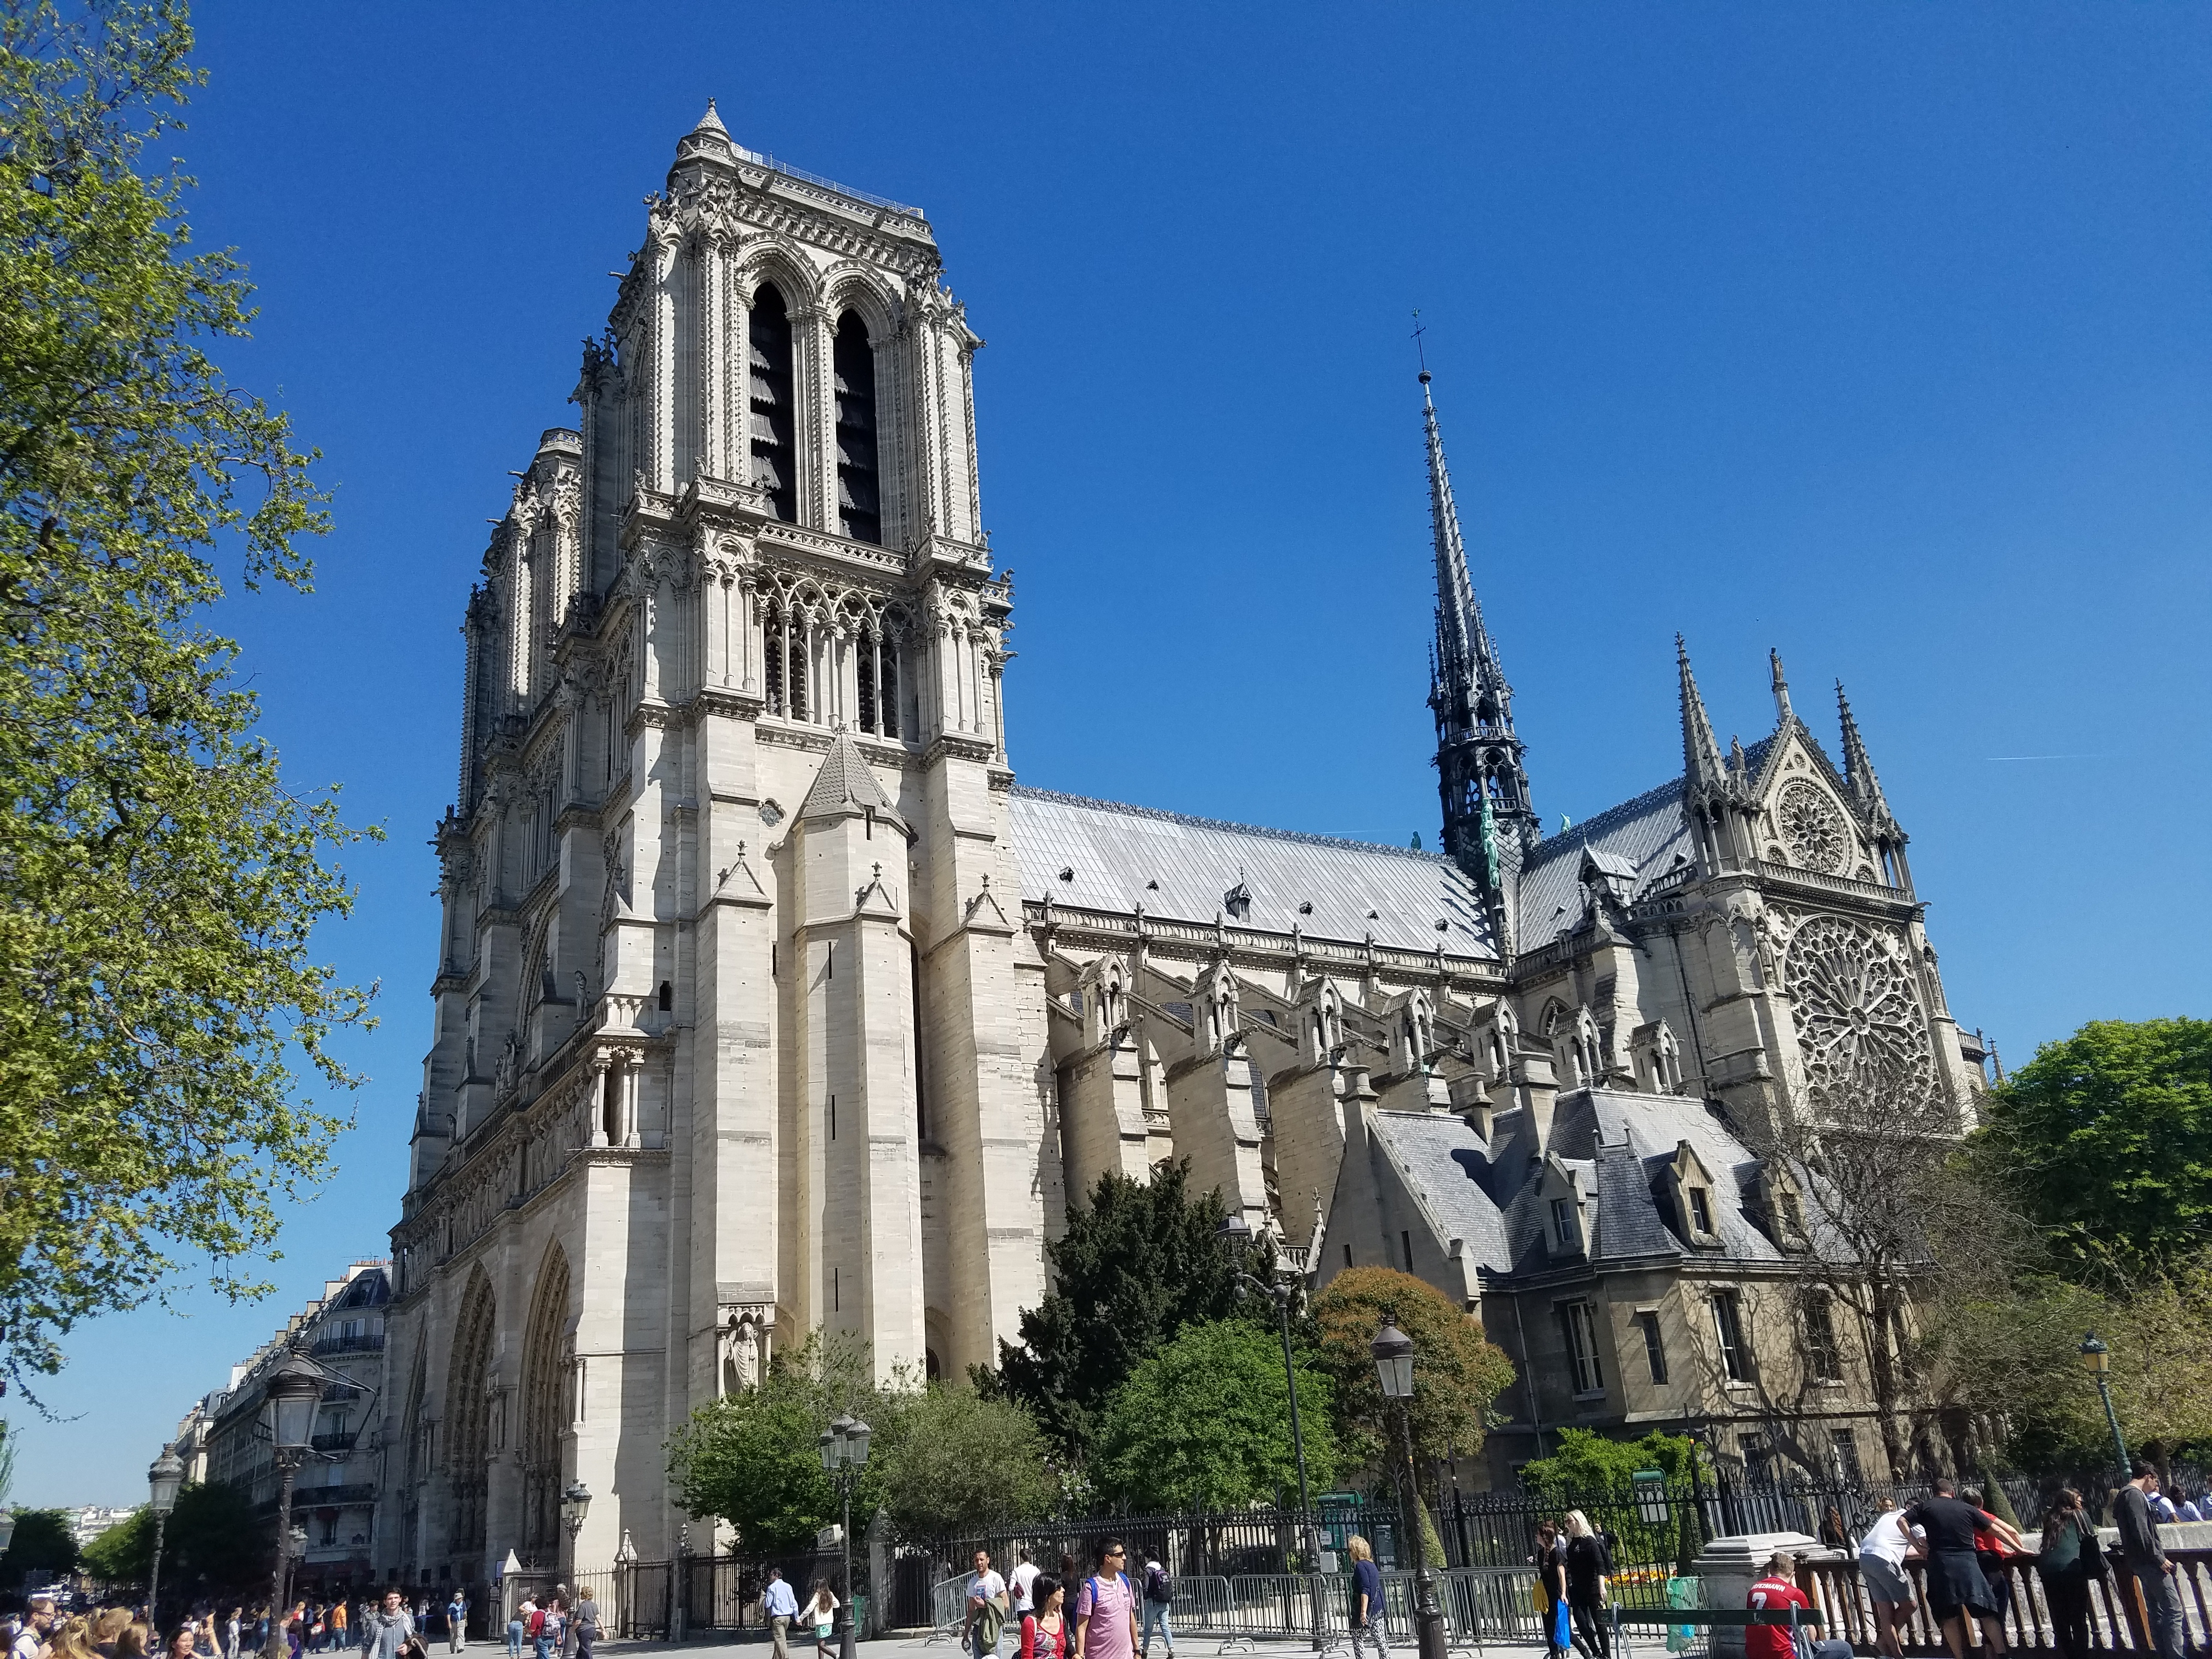 A side view of Notre Dame in April 2017.